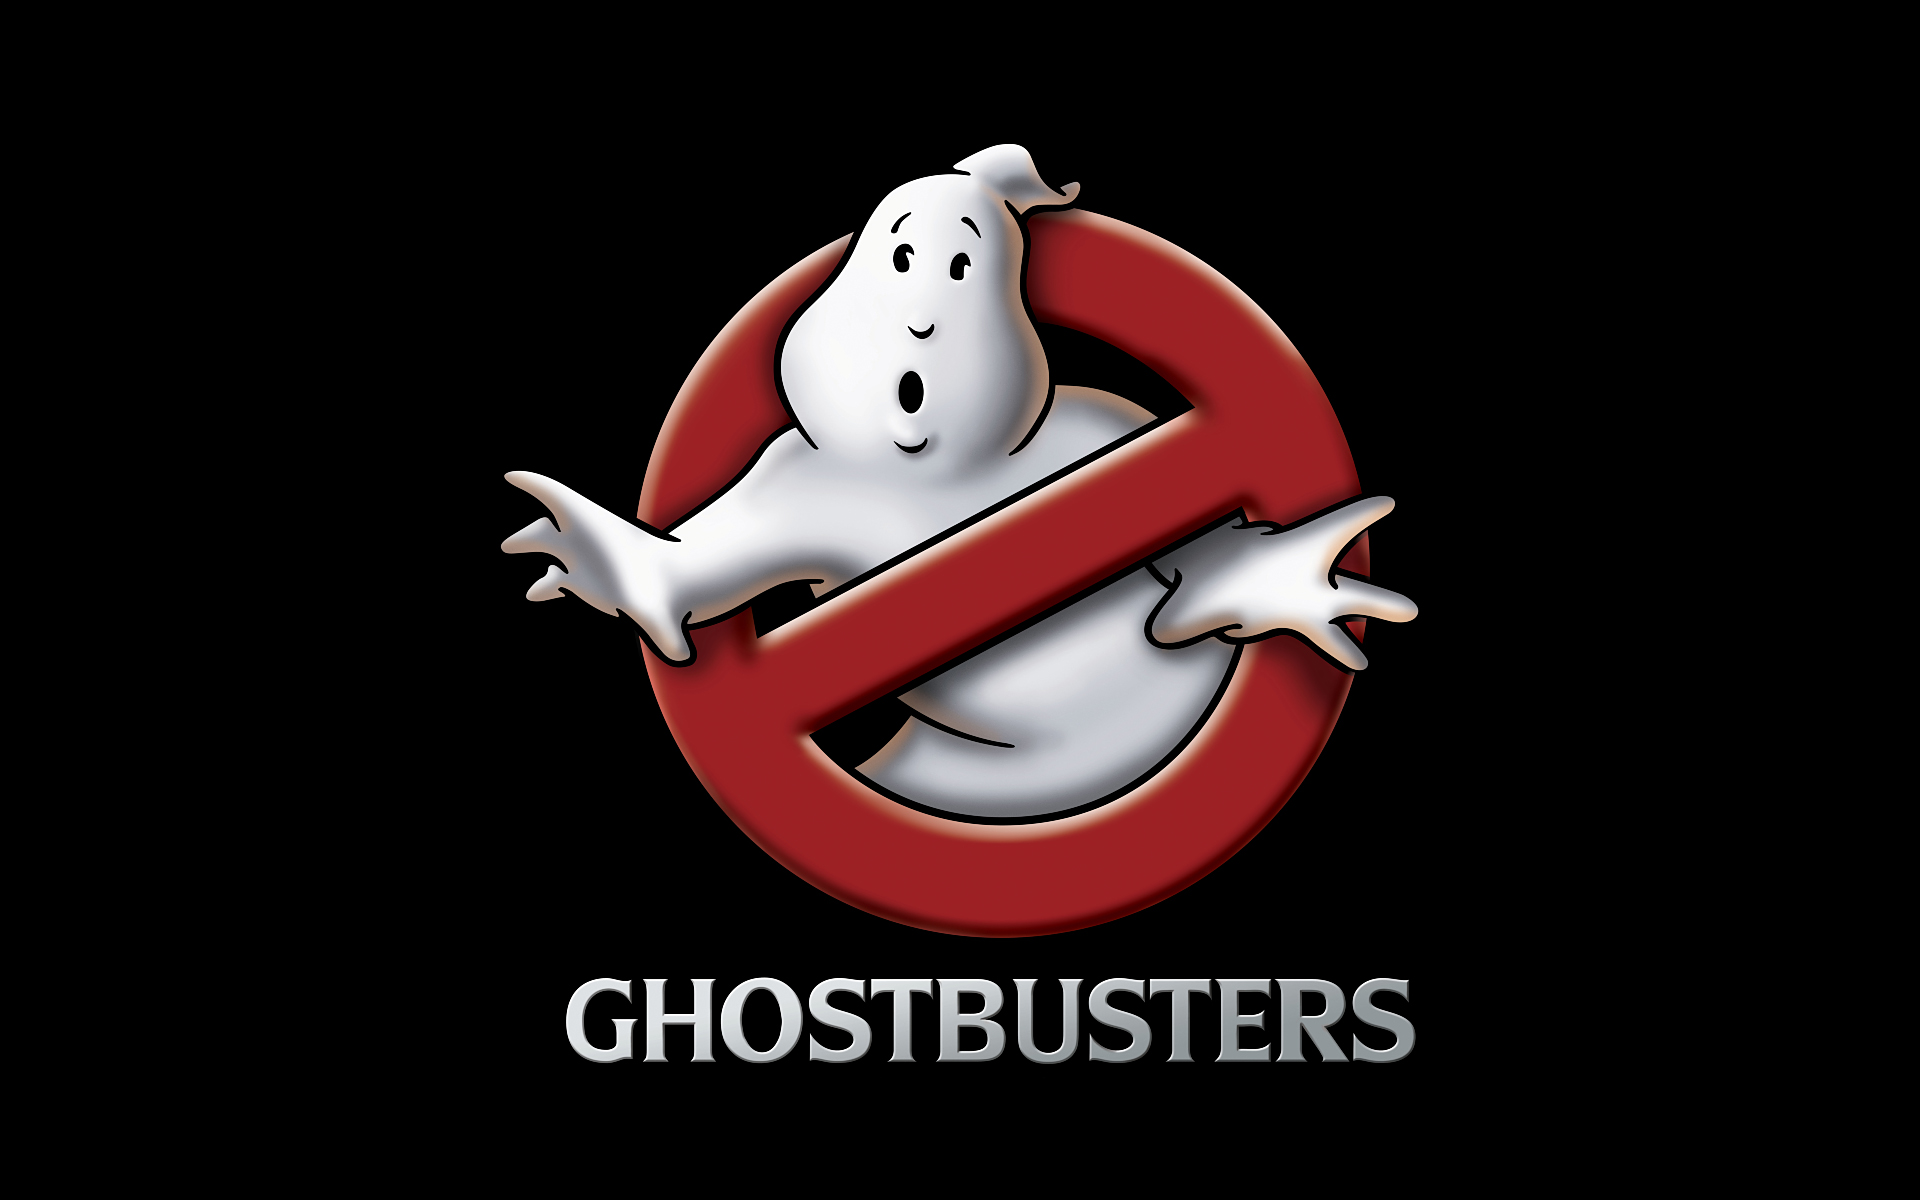 GhostBusters logo 3D Wallpaper